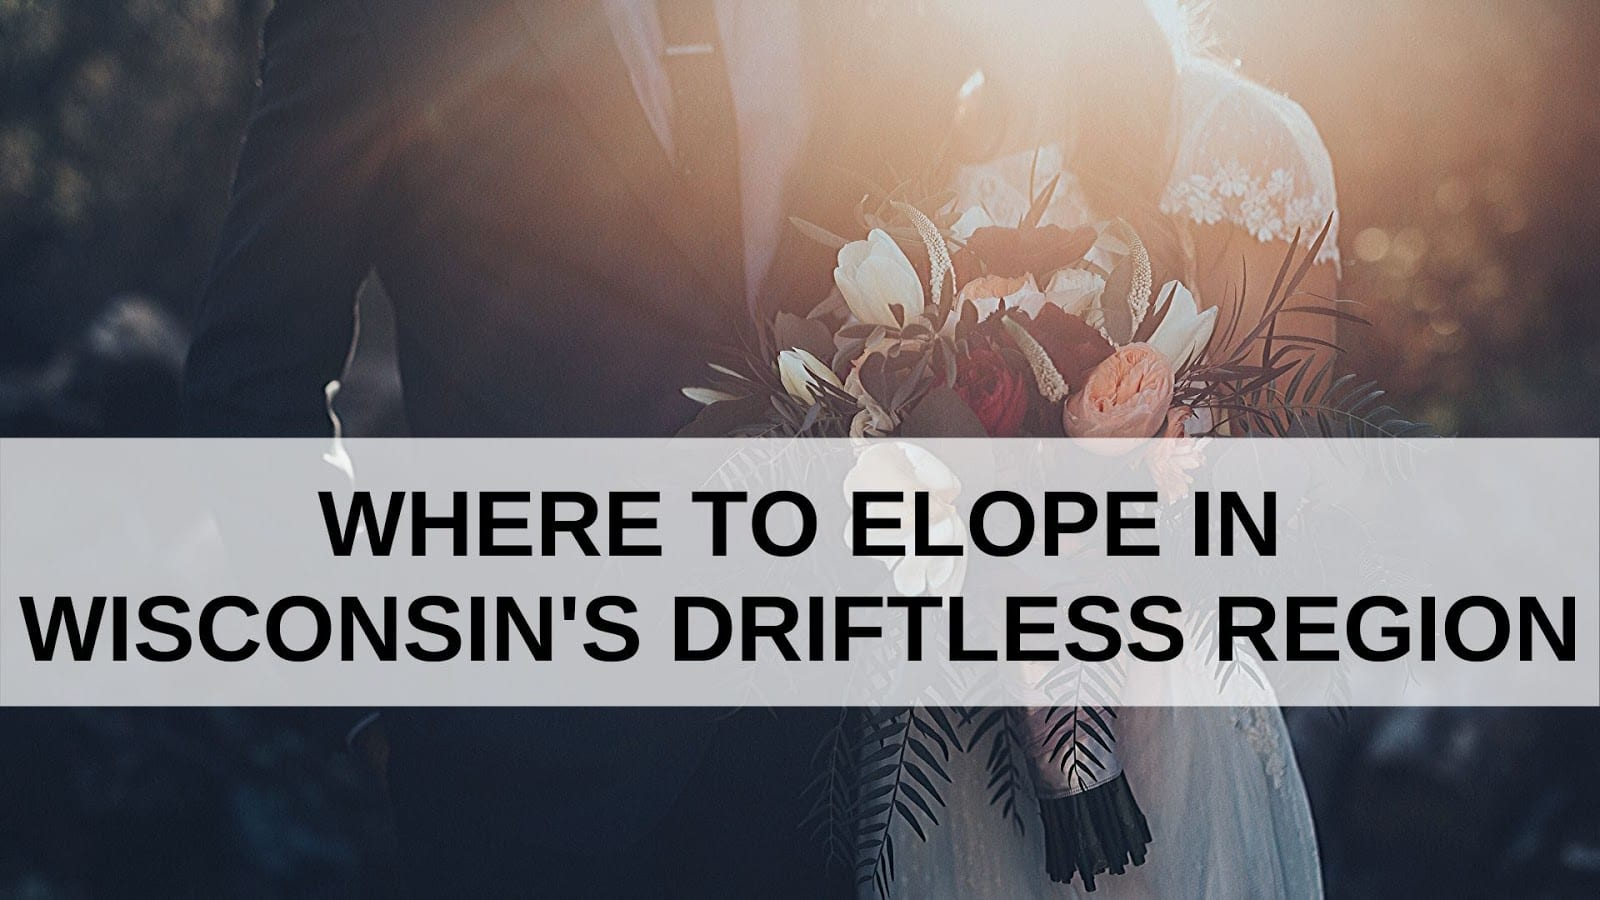 Where to Elope in Wisconsin's Driftless Region